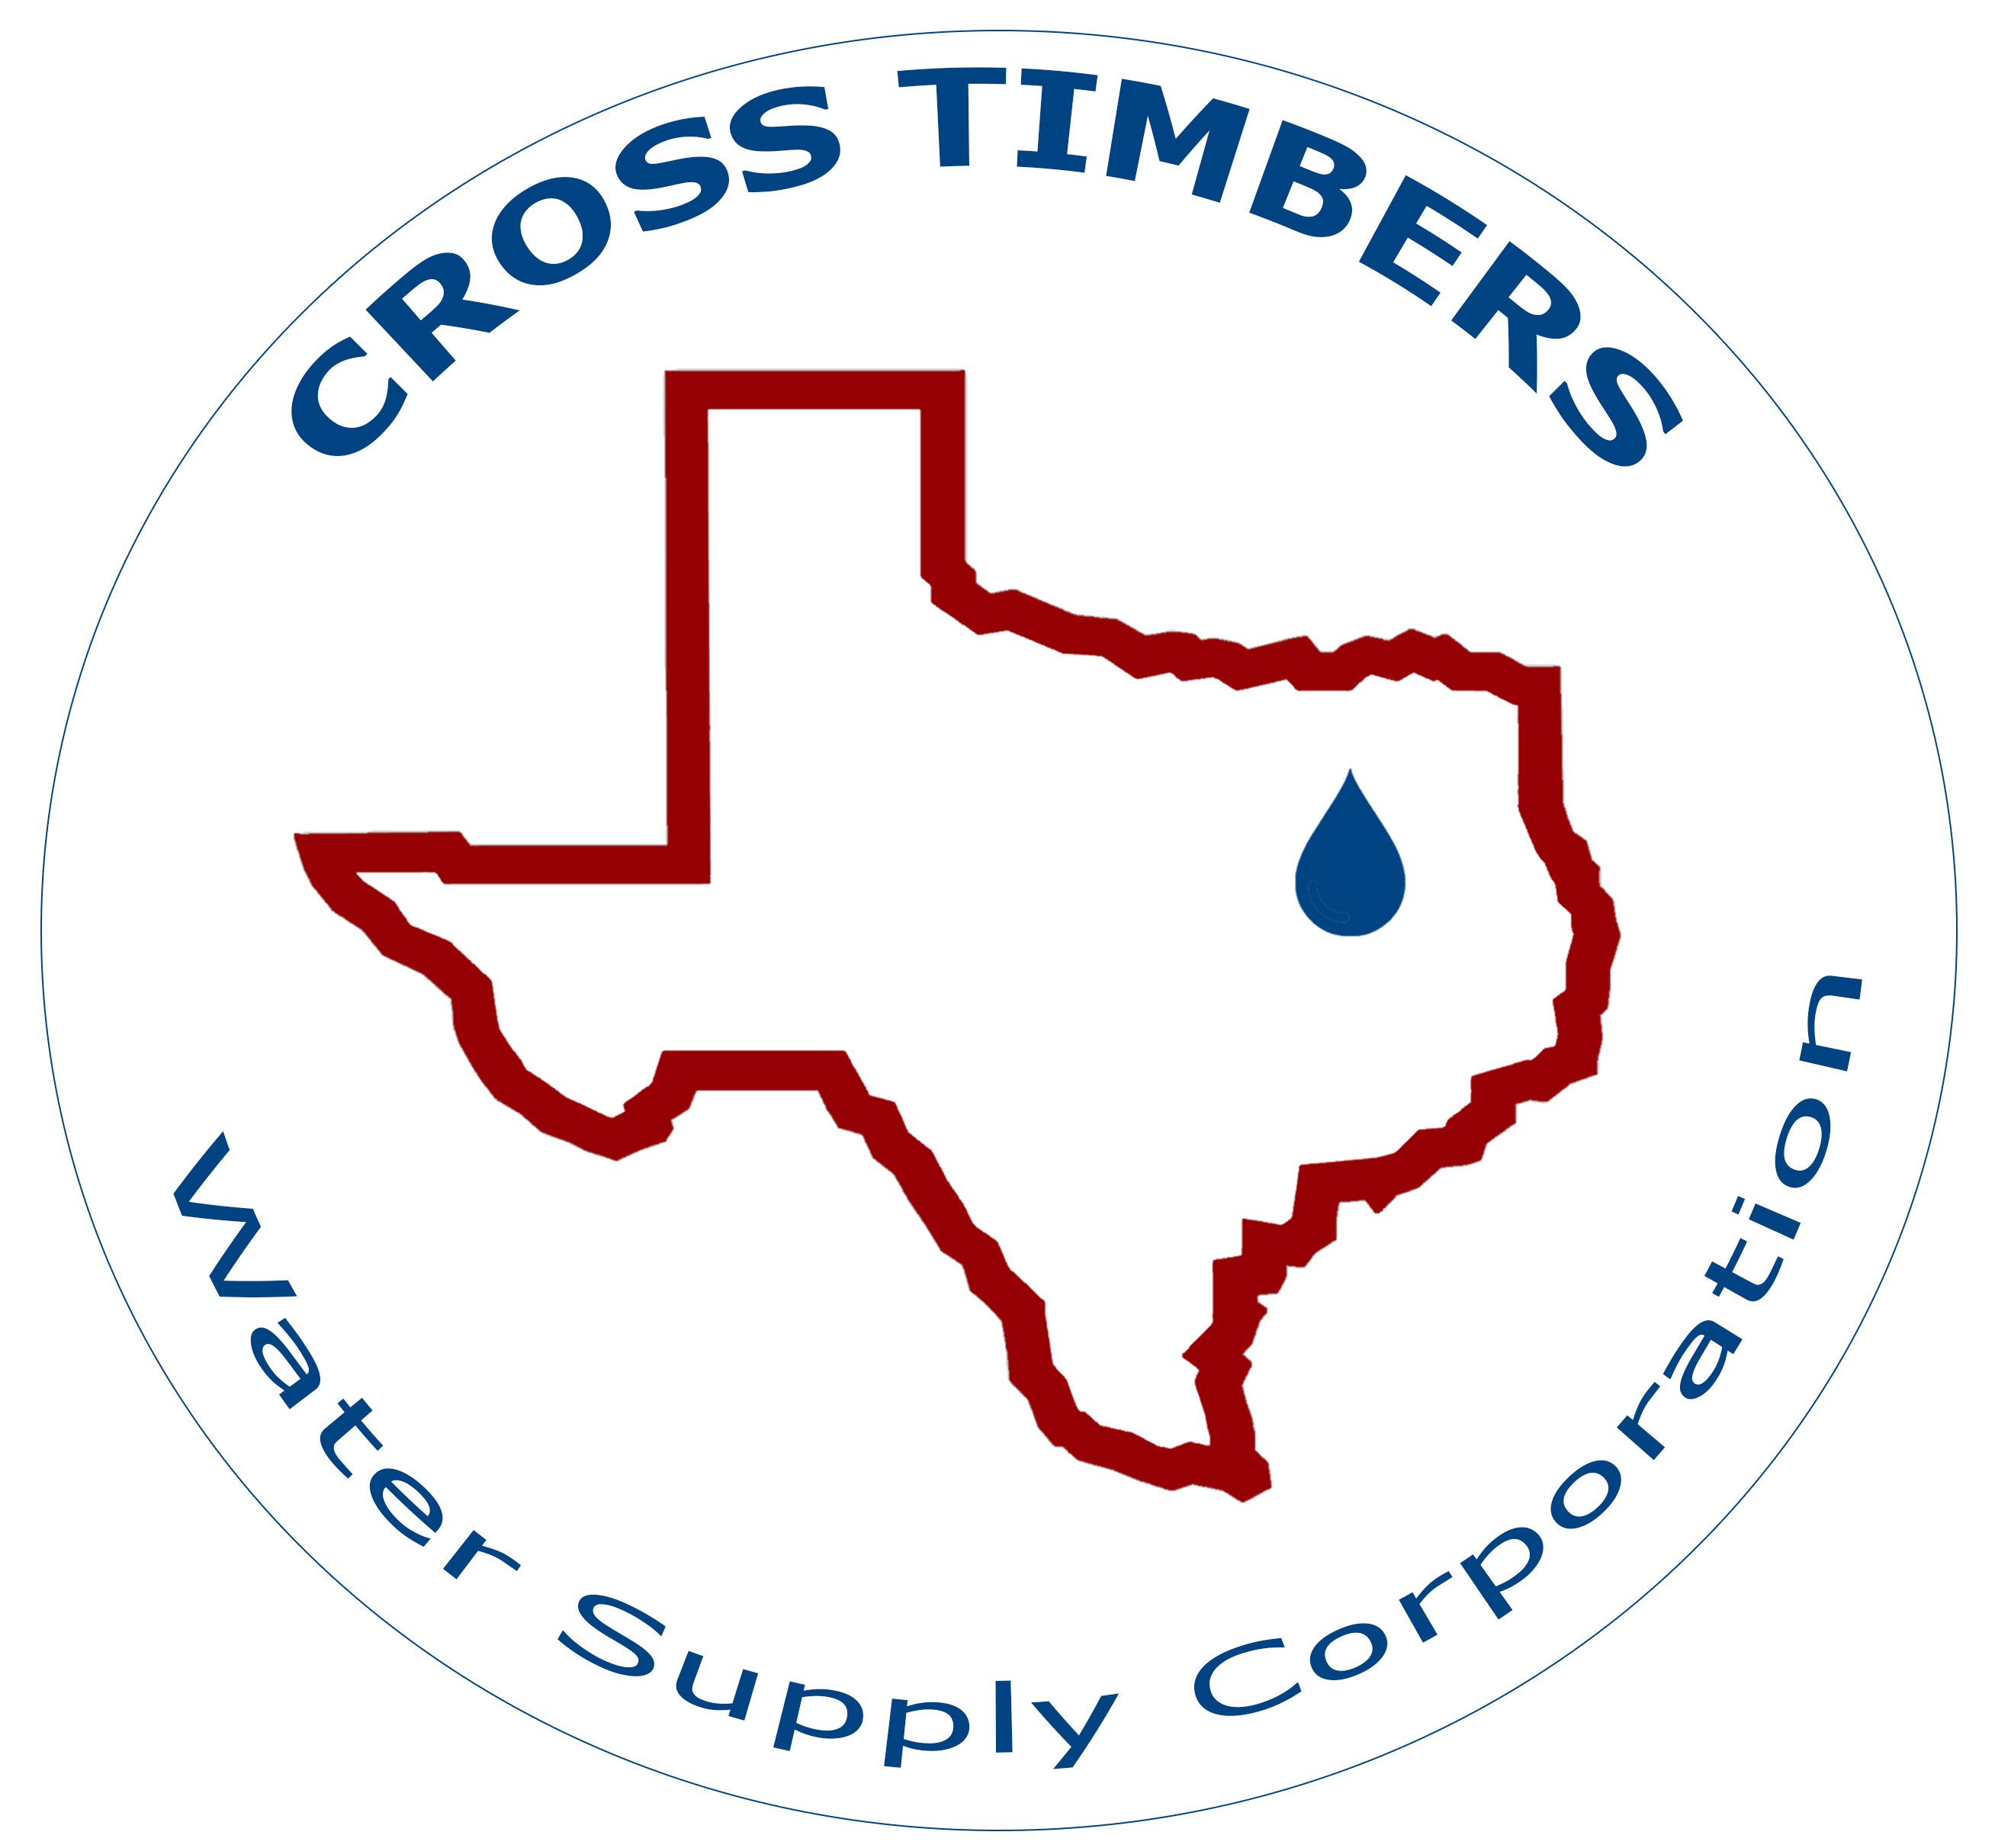 Cross Timbers Water